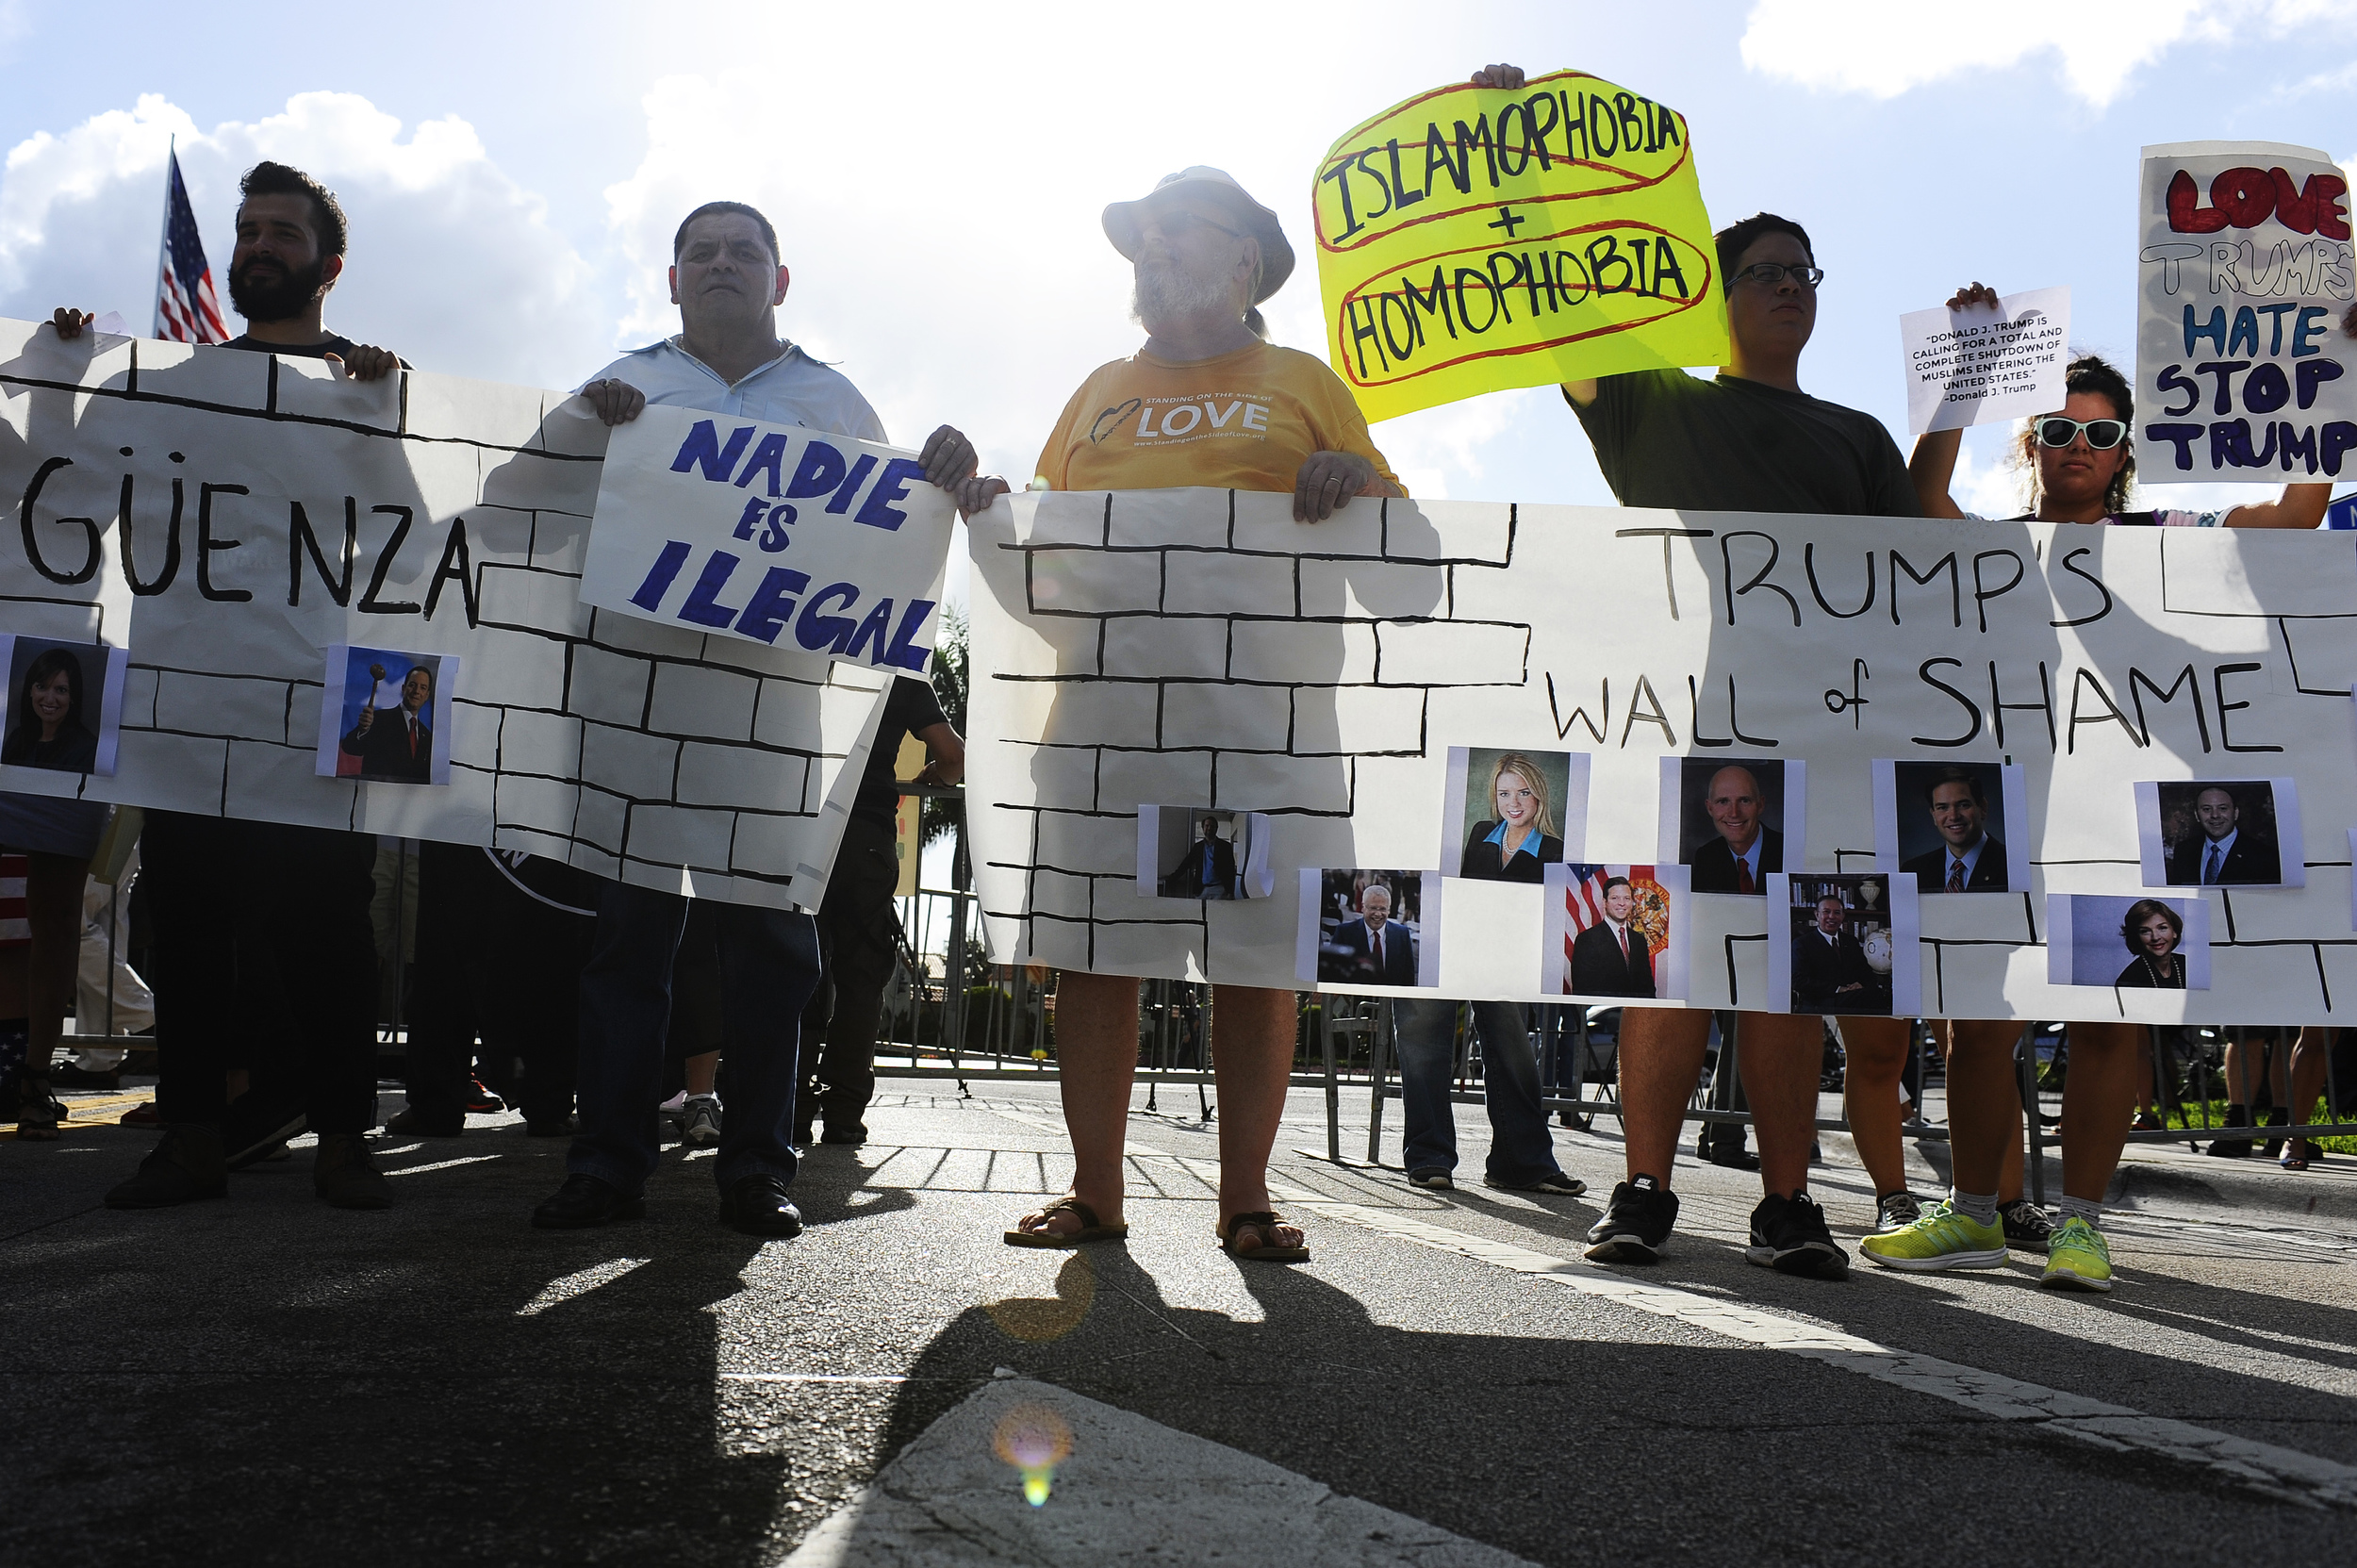 """Protesters stand across the street from the entrance to Trump National Doral Golf Resort on the corner of NW 87th Ave. and NW 41st St. in Miami, Florida, and unveil the """"Trump's Wall of Shame"""" sign in protest. Republican Presidential nominee Donald Trump is holding a $50,000 a plate fundraiser with Governor Rick Scott and State Representative Carlos Trujillo."""